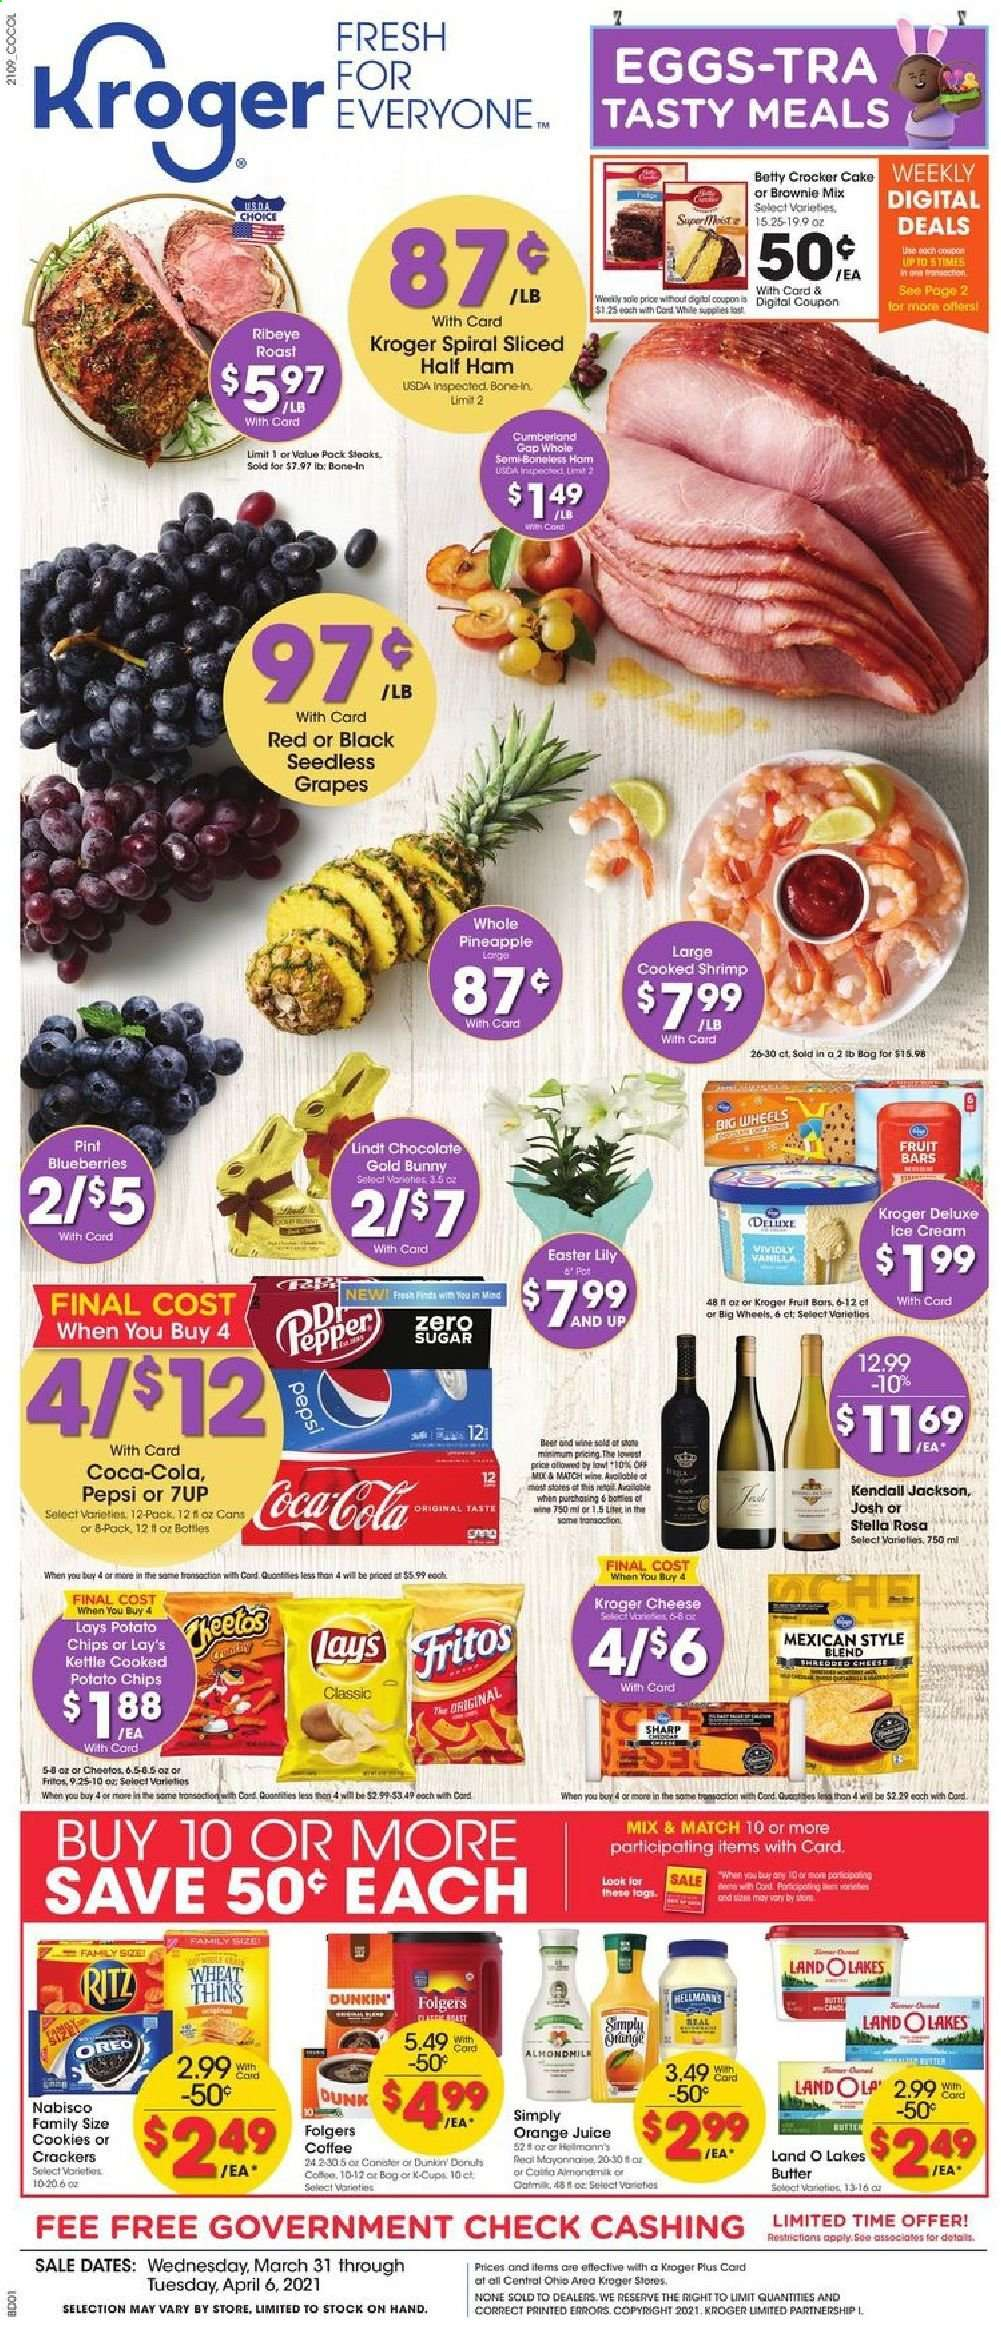 Kroger Flyer - 03.31.2021 - 04.06.2021 - Sales products - bed, blueberries, seedless grapes, brownie mix, cake, donut, shrimps, ham, cheese, Oreo, eggs, butter, mayonnaise, ice cream, cookies, chocolate, Lindt, crackers, RITZ, potato chips, Cheetos, chips, Lay's, Thins, Fritos, Coca-Cola, Pepsi, orange juice, juice, 7UP, coffee, Folgers, coffee capsules, L'Or, K-Cups, wine, beer, rib eye, pot, Sharp, half ham, grapes, pineapple. Page 1.